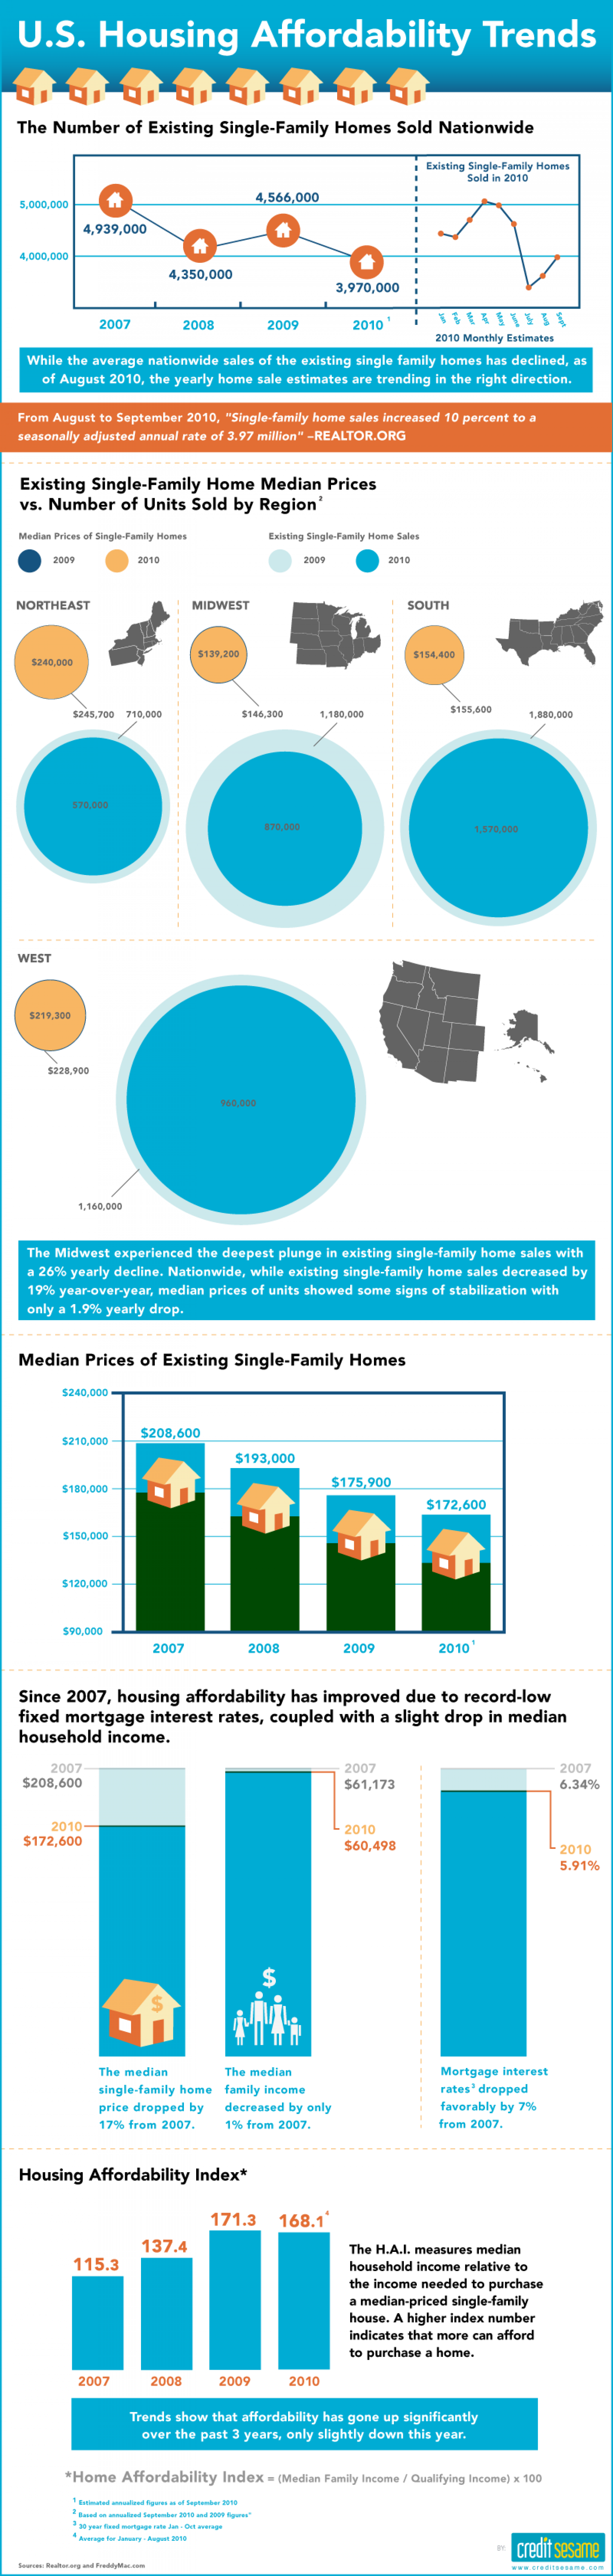 U.S. Housing Affordability Trends Infographic